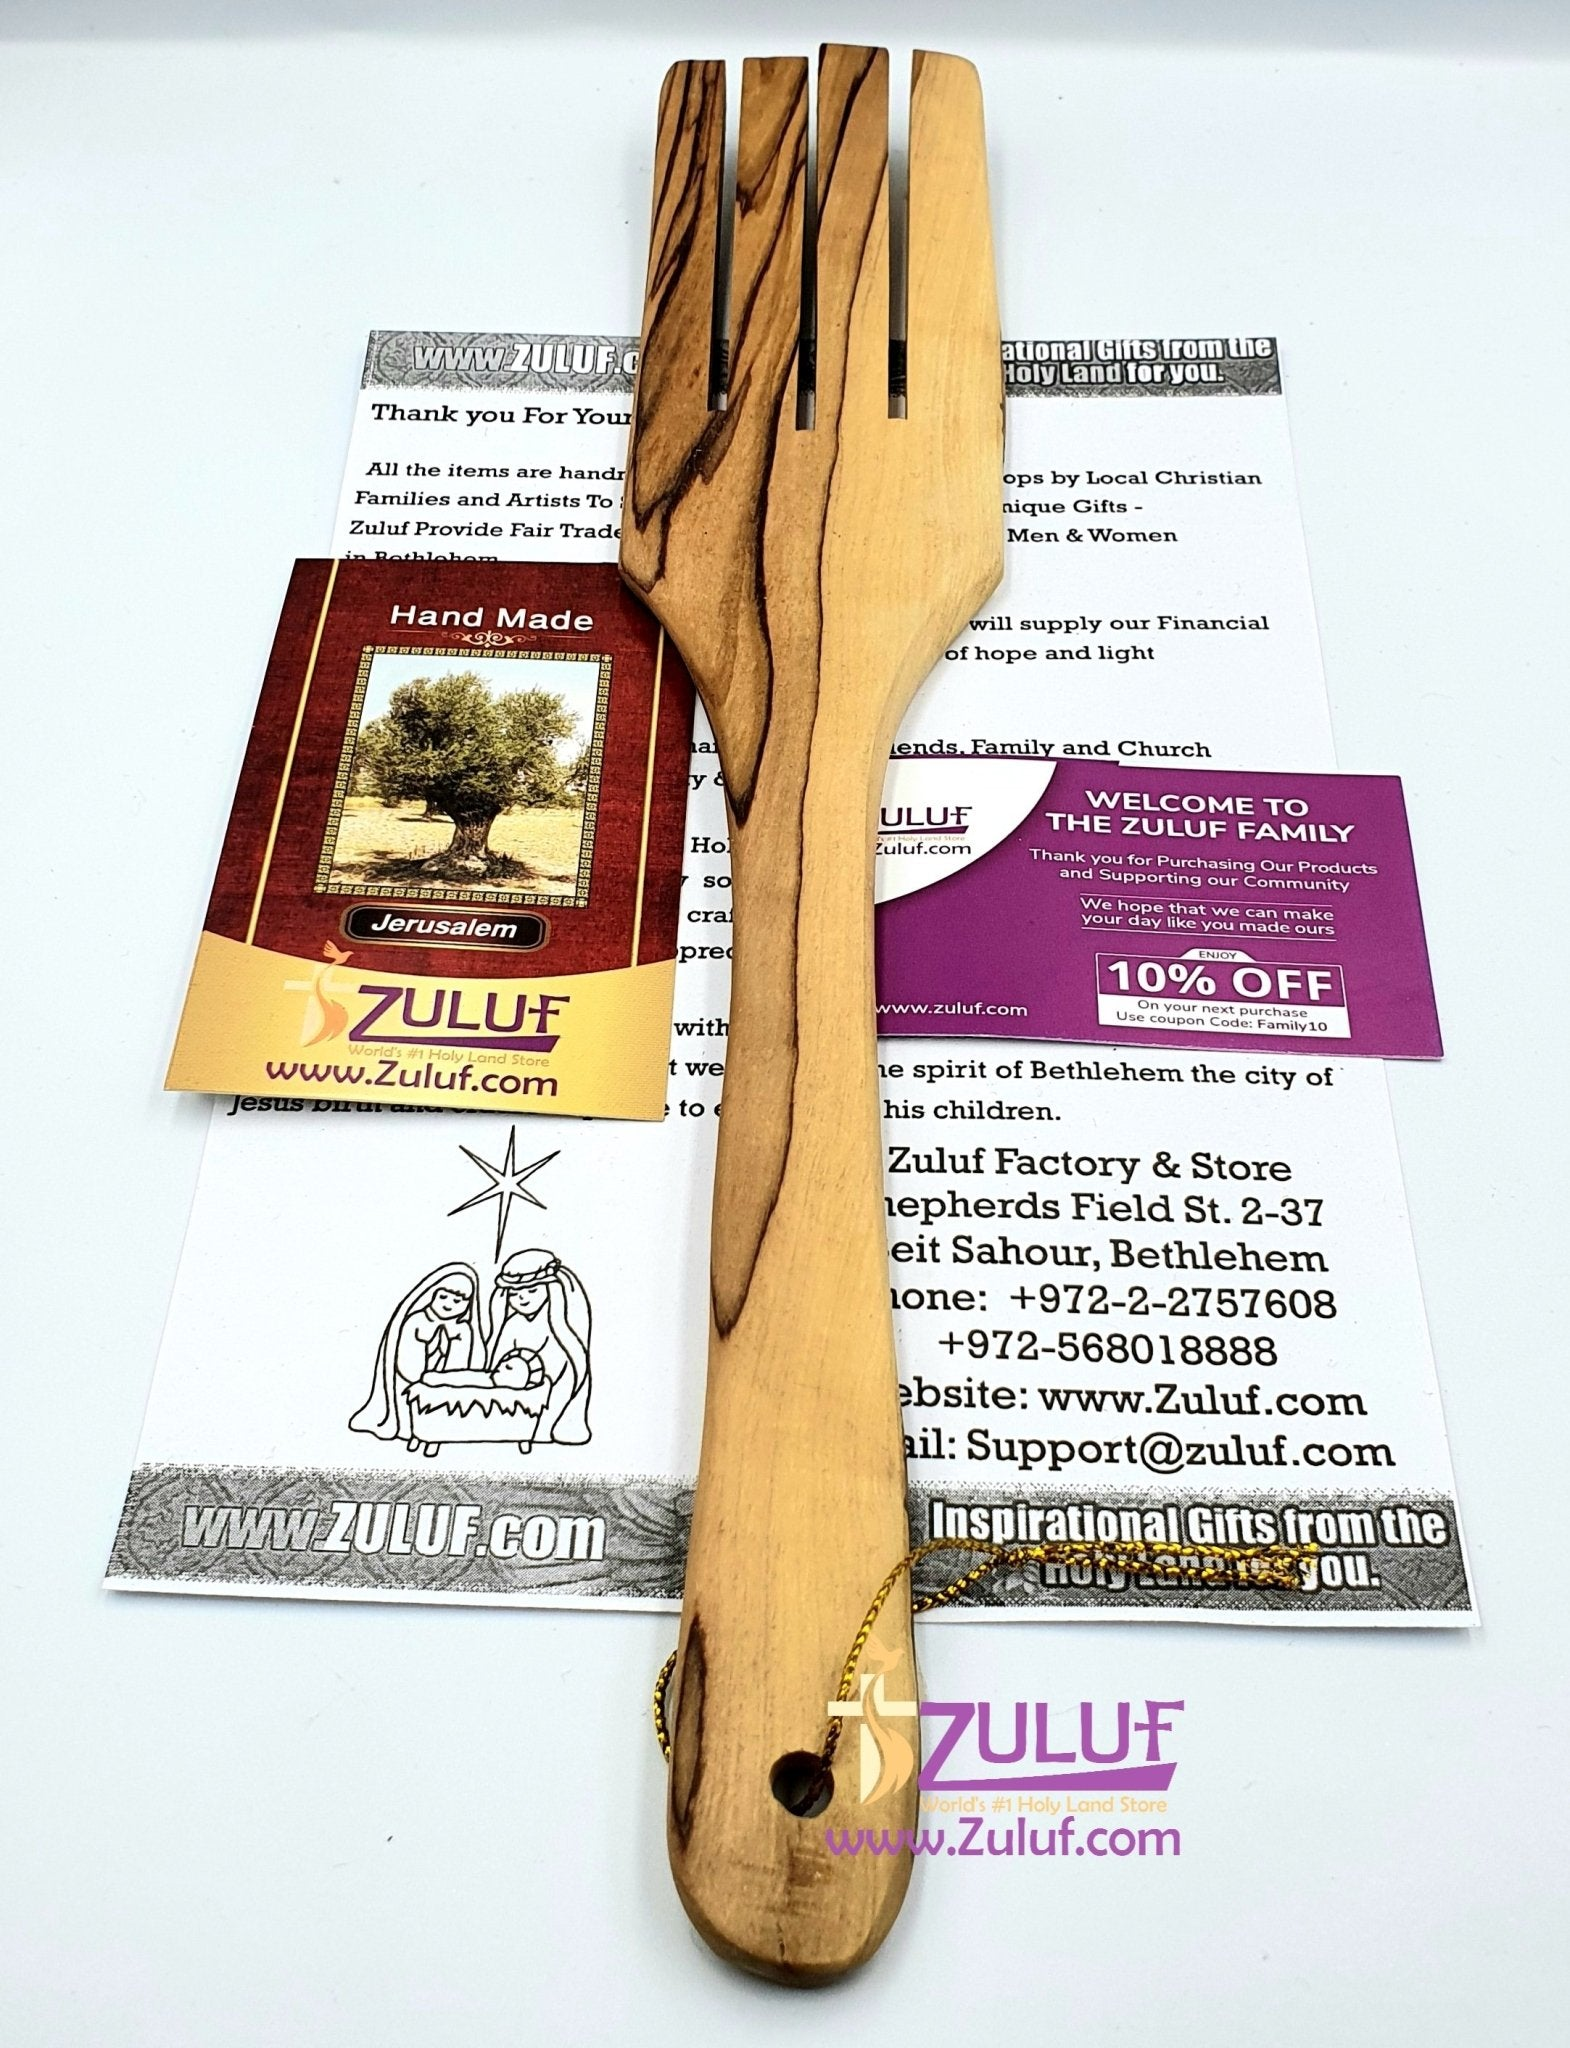 Olive wood hand made forg KIT004 - Zuluf